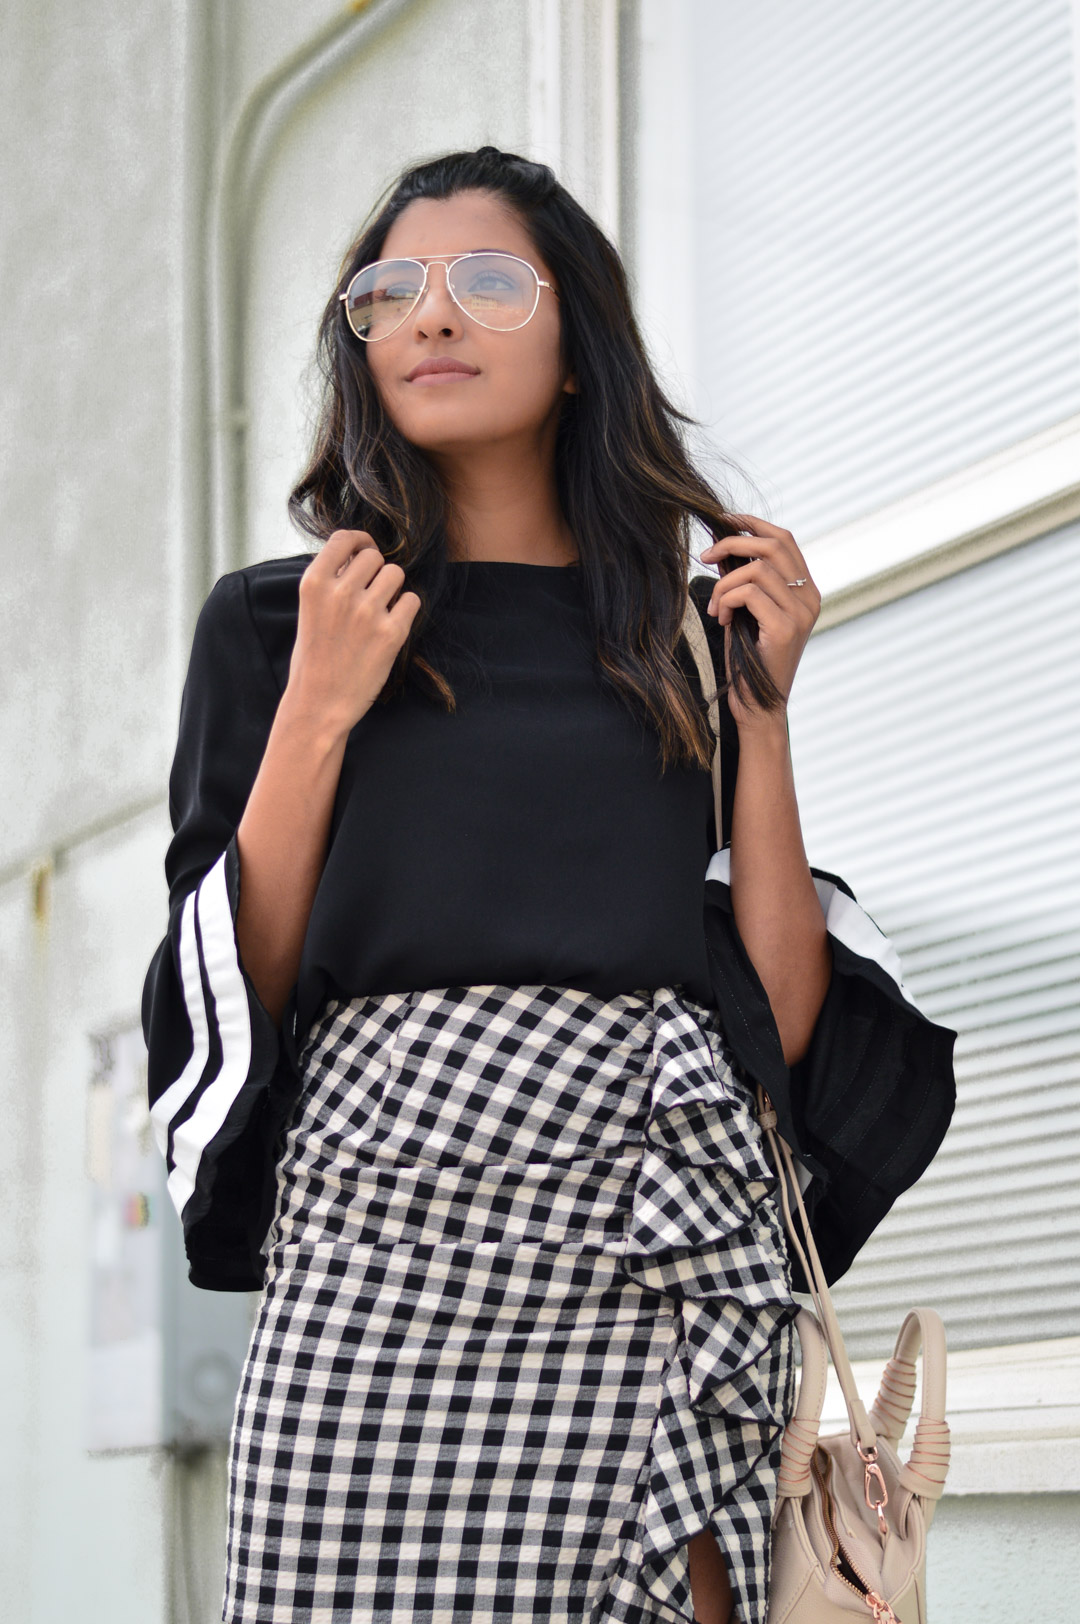 bell-sleeves-gingham-ruffles-clear-glasses-style-blogger-outfit 3